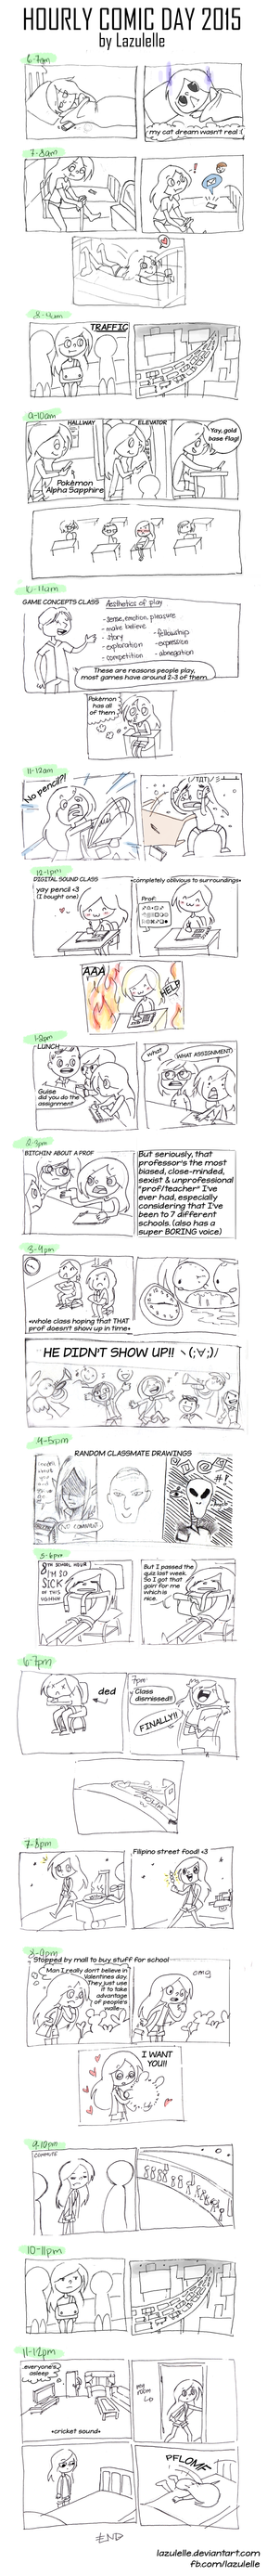 Hourly Comic Day 2015 by Lazulelle